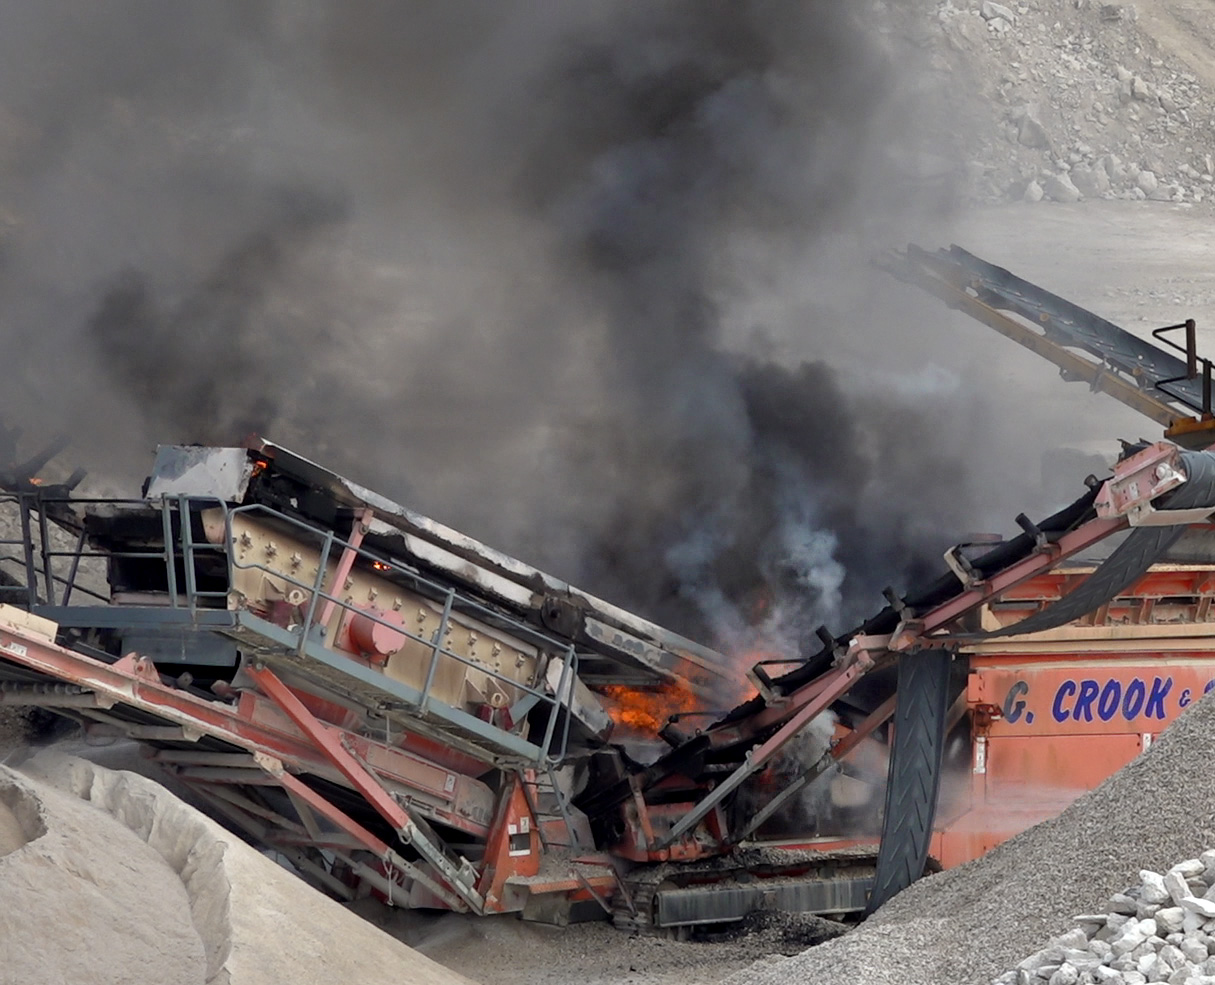 Machinery up in flames in quarry as 'thick black smoke' seen for miles